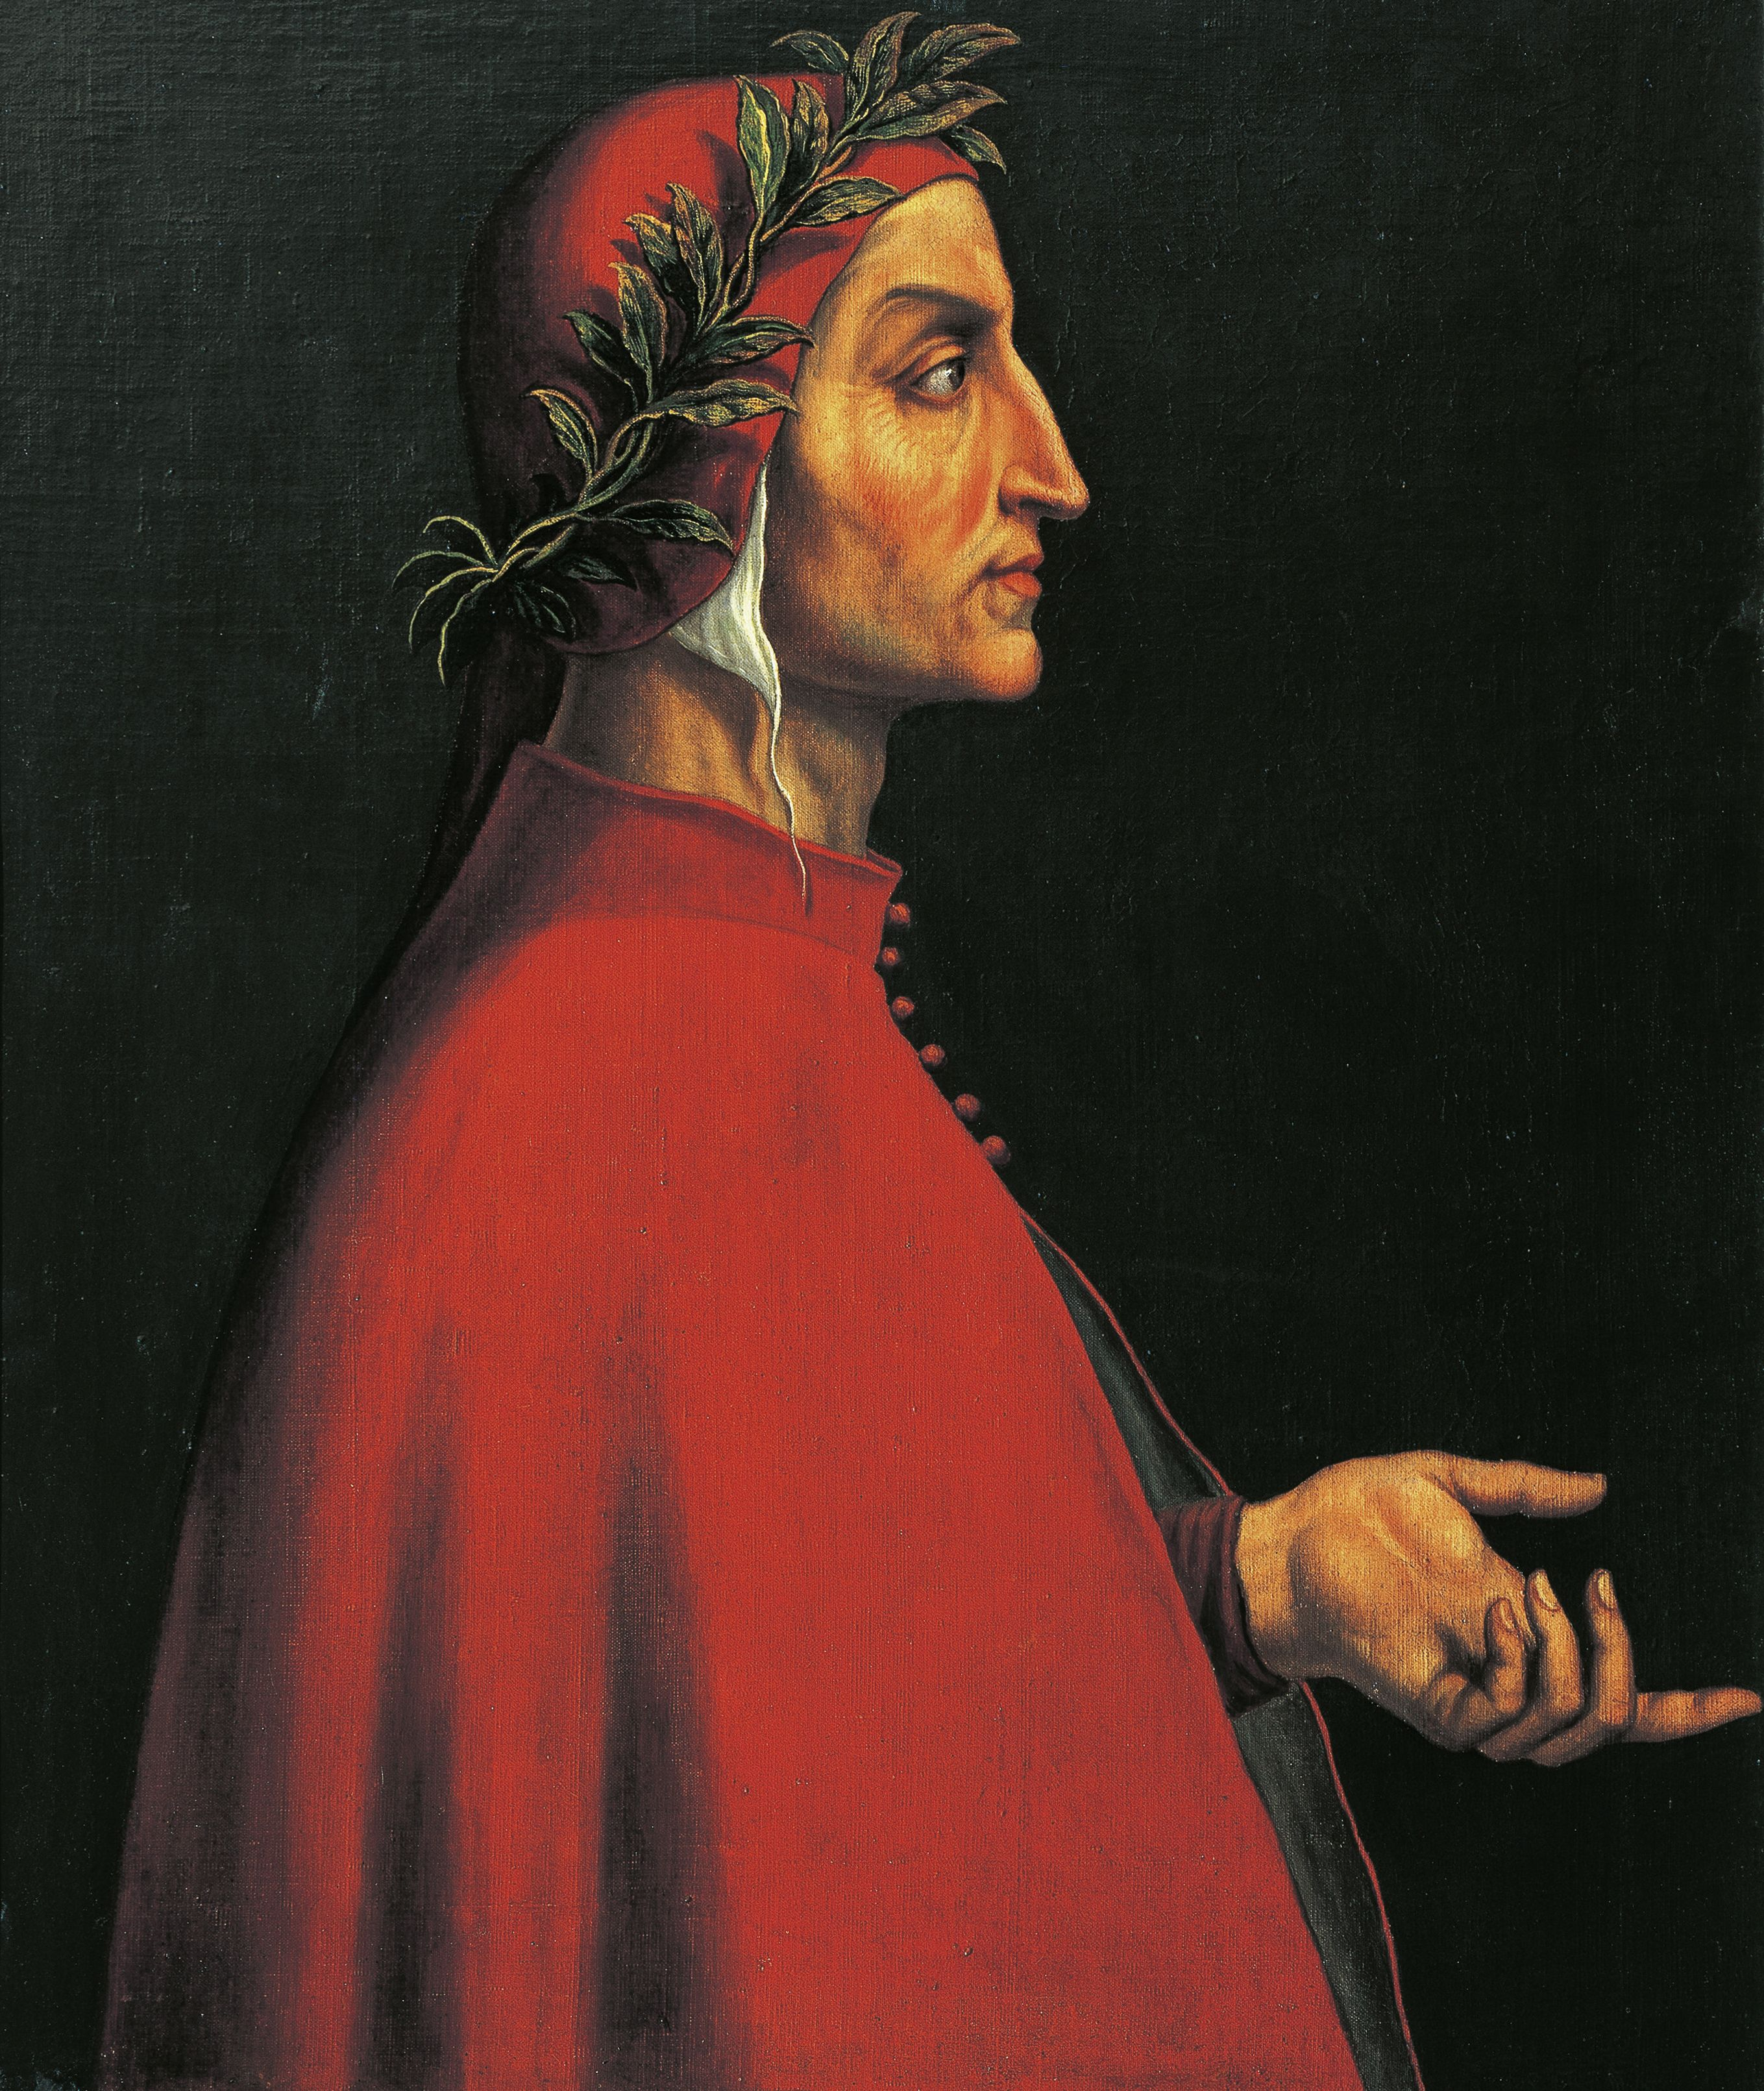 hell dante alighieri essay The essay from hell: dante's inferno - in alighieri dante's inferno, many different people were put in hell for what dante believes they did wrong.